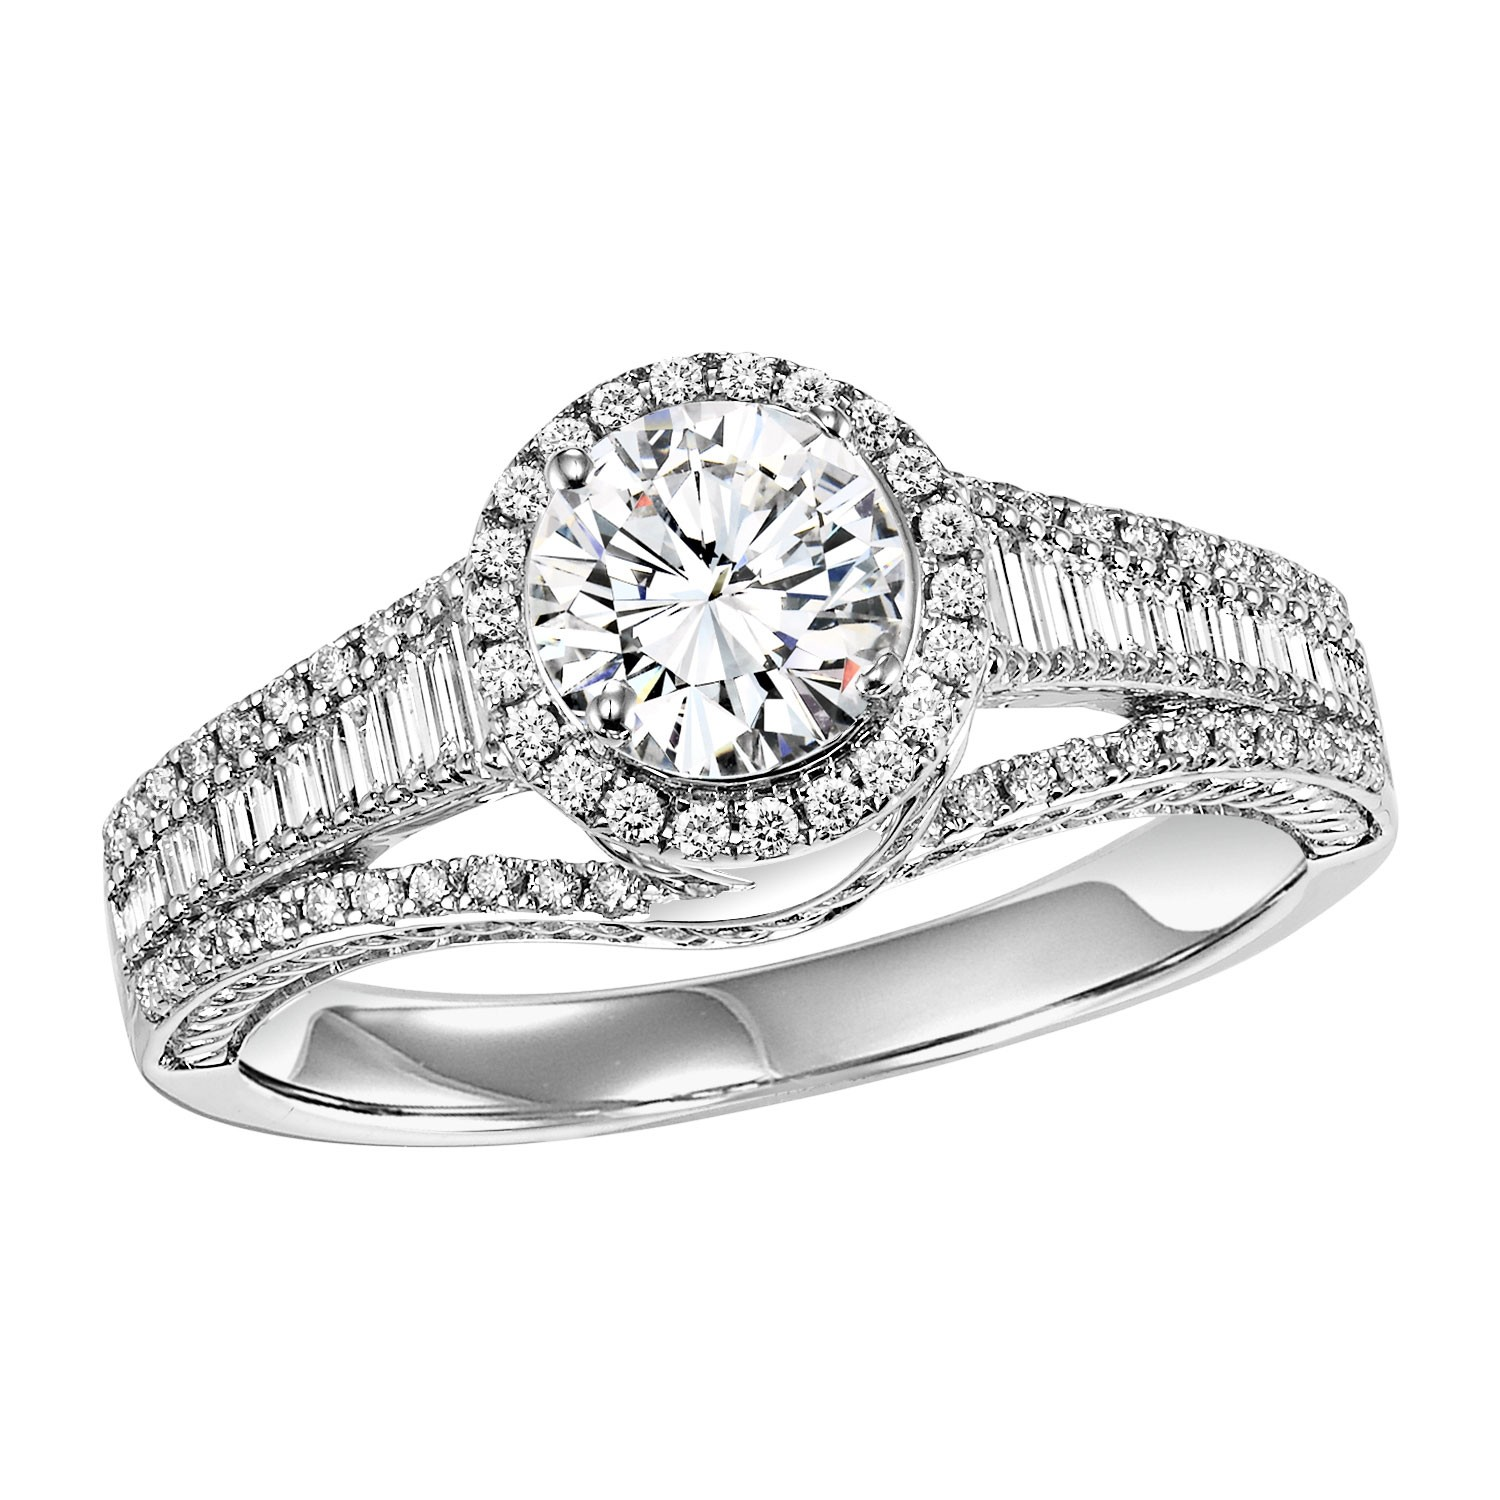 14K Diamond Engagement Ring 1/2 ctw WB5929E